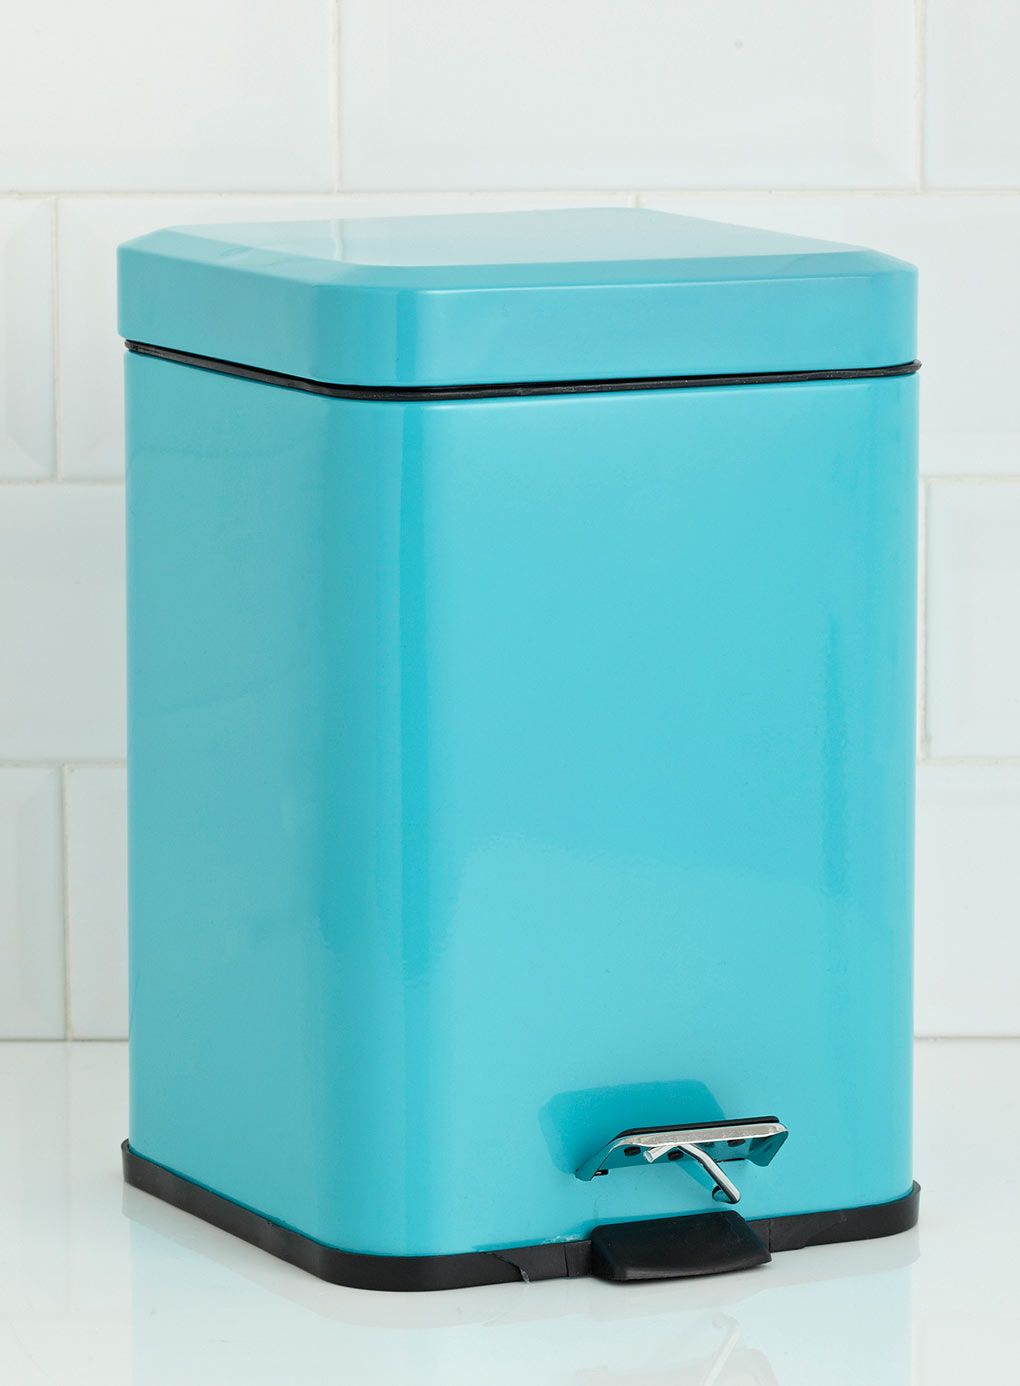 6 Litre Rounded Square Pedal Bin Turquoise | TURQUOISE Dream ...